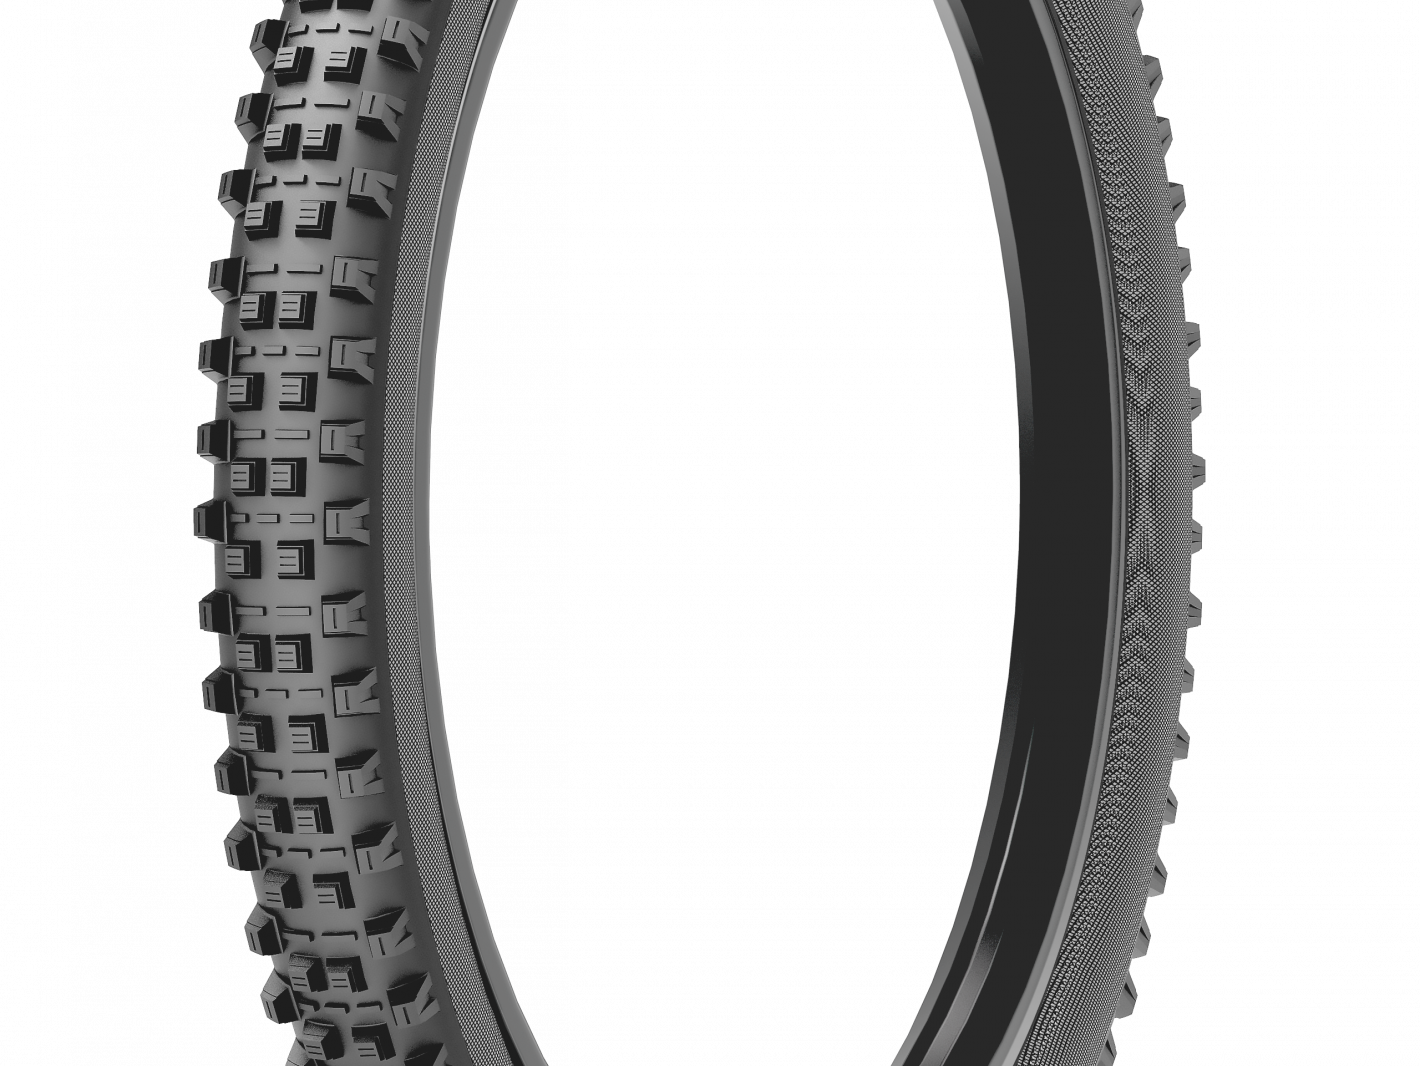 Picture 4: Kenda's Gran Mudda is its first version of off-road tires specifically for muddy terrain. The three-dimensional tire tread pattern grips the muddy ground well, contributing to it being high